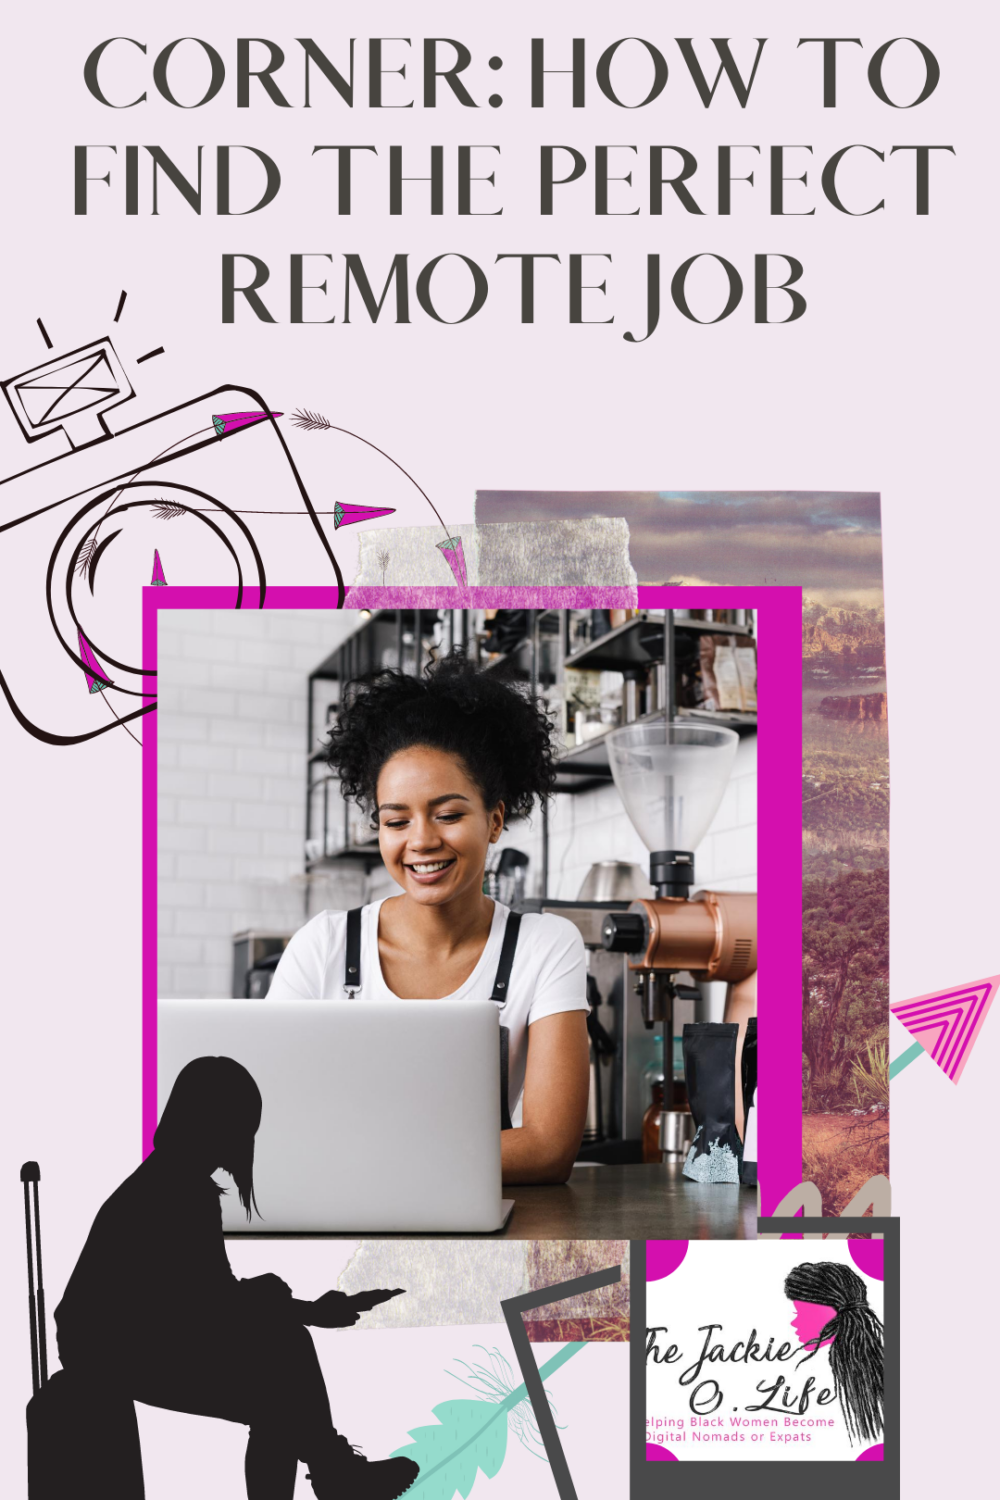 HOW TO FIND THE PERFECT REMOTE JOB